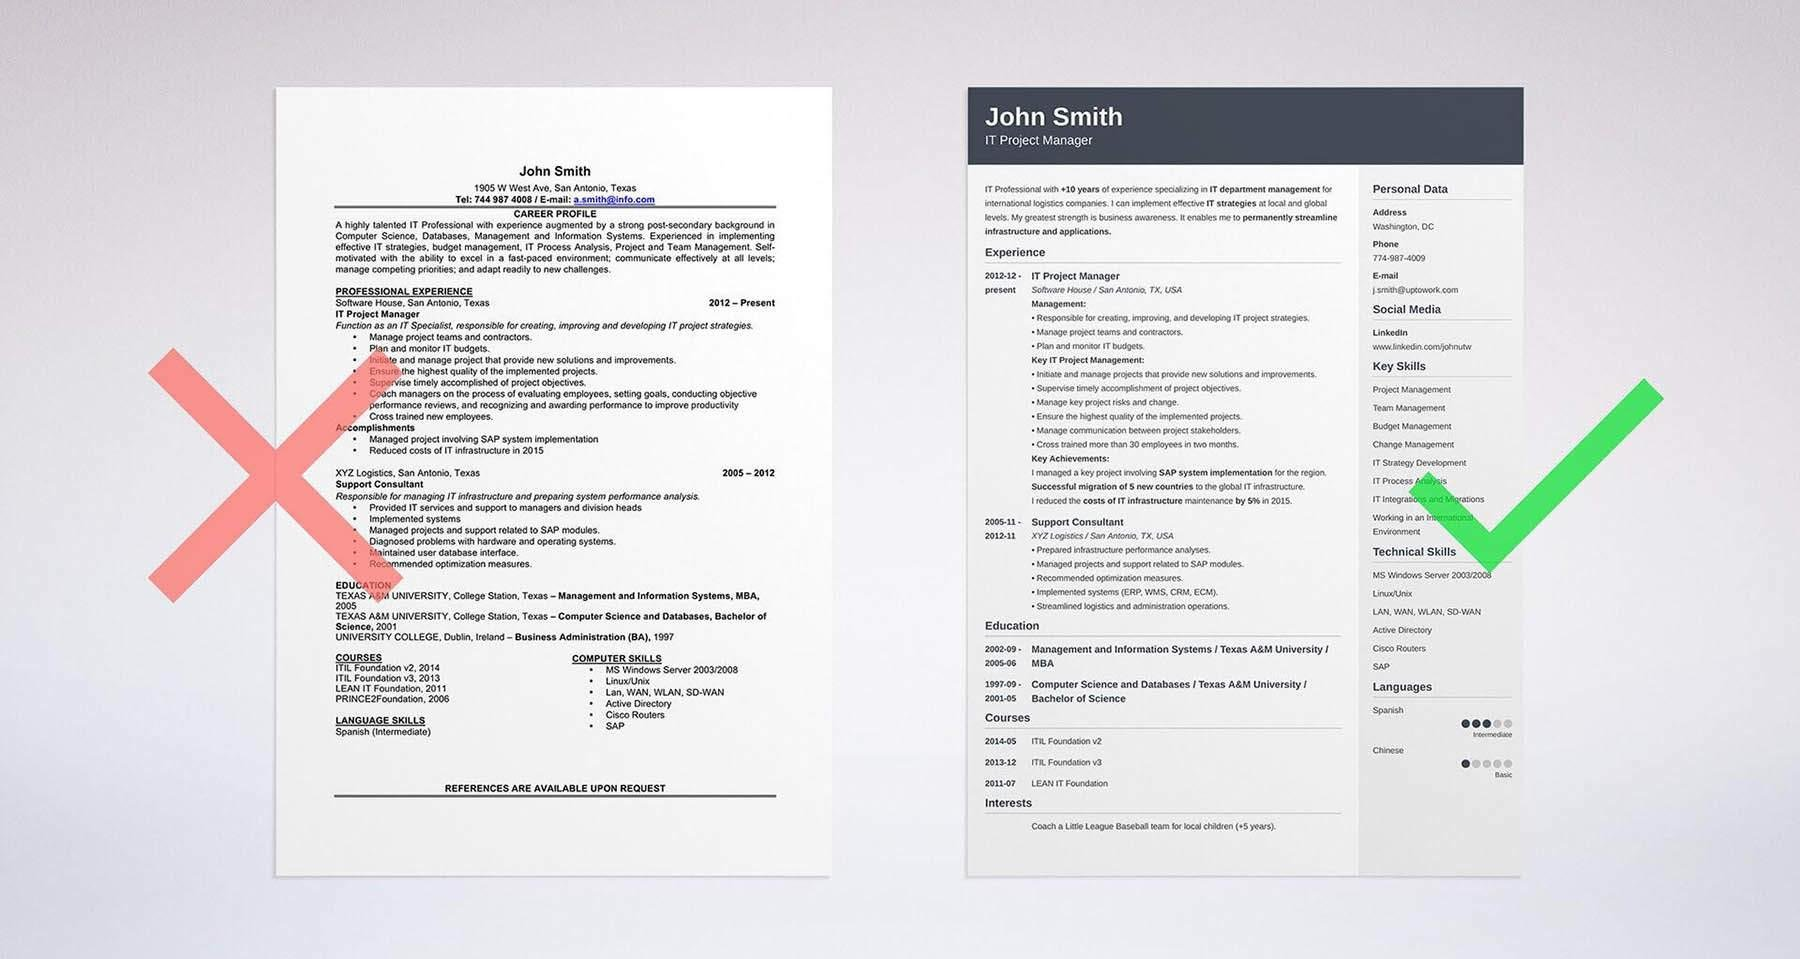 Objective Summary For Resume Stunning 48 Resume Objective Examples Use Them On Your Resume Tips